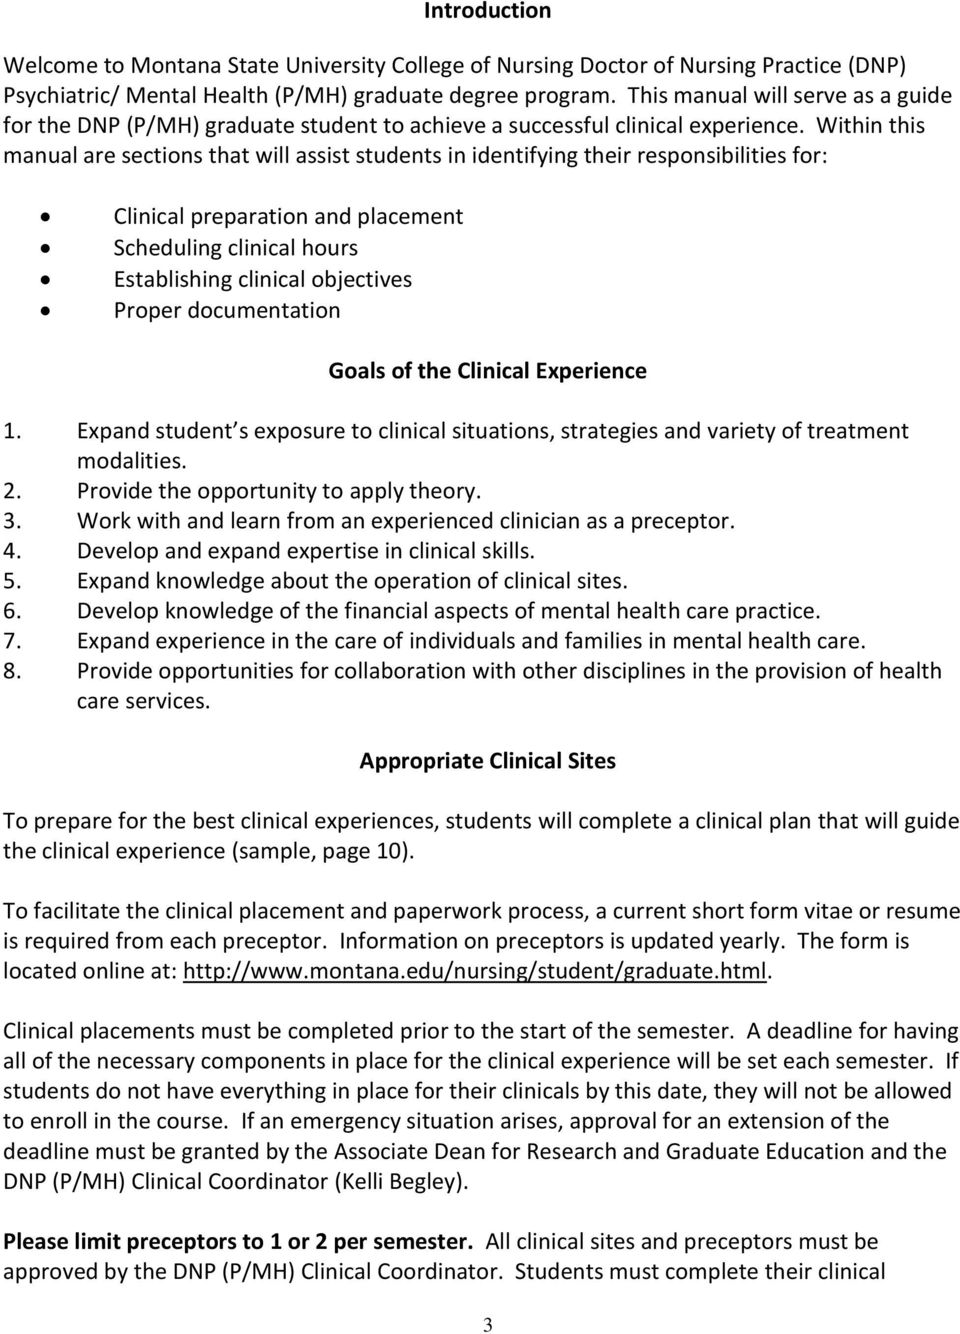 Within this manual are sections that will assist students in identifying their responsibilities for: Clinical preparation and placement Scheduling clinical hours Establishing clinical objectives